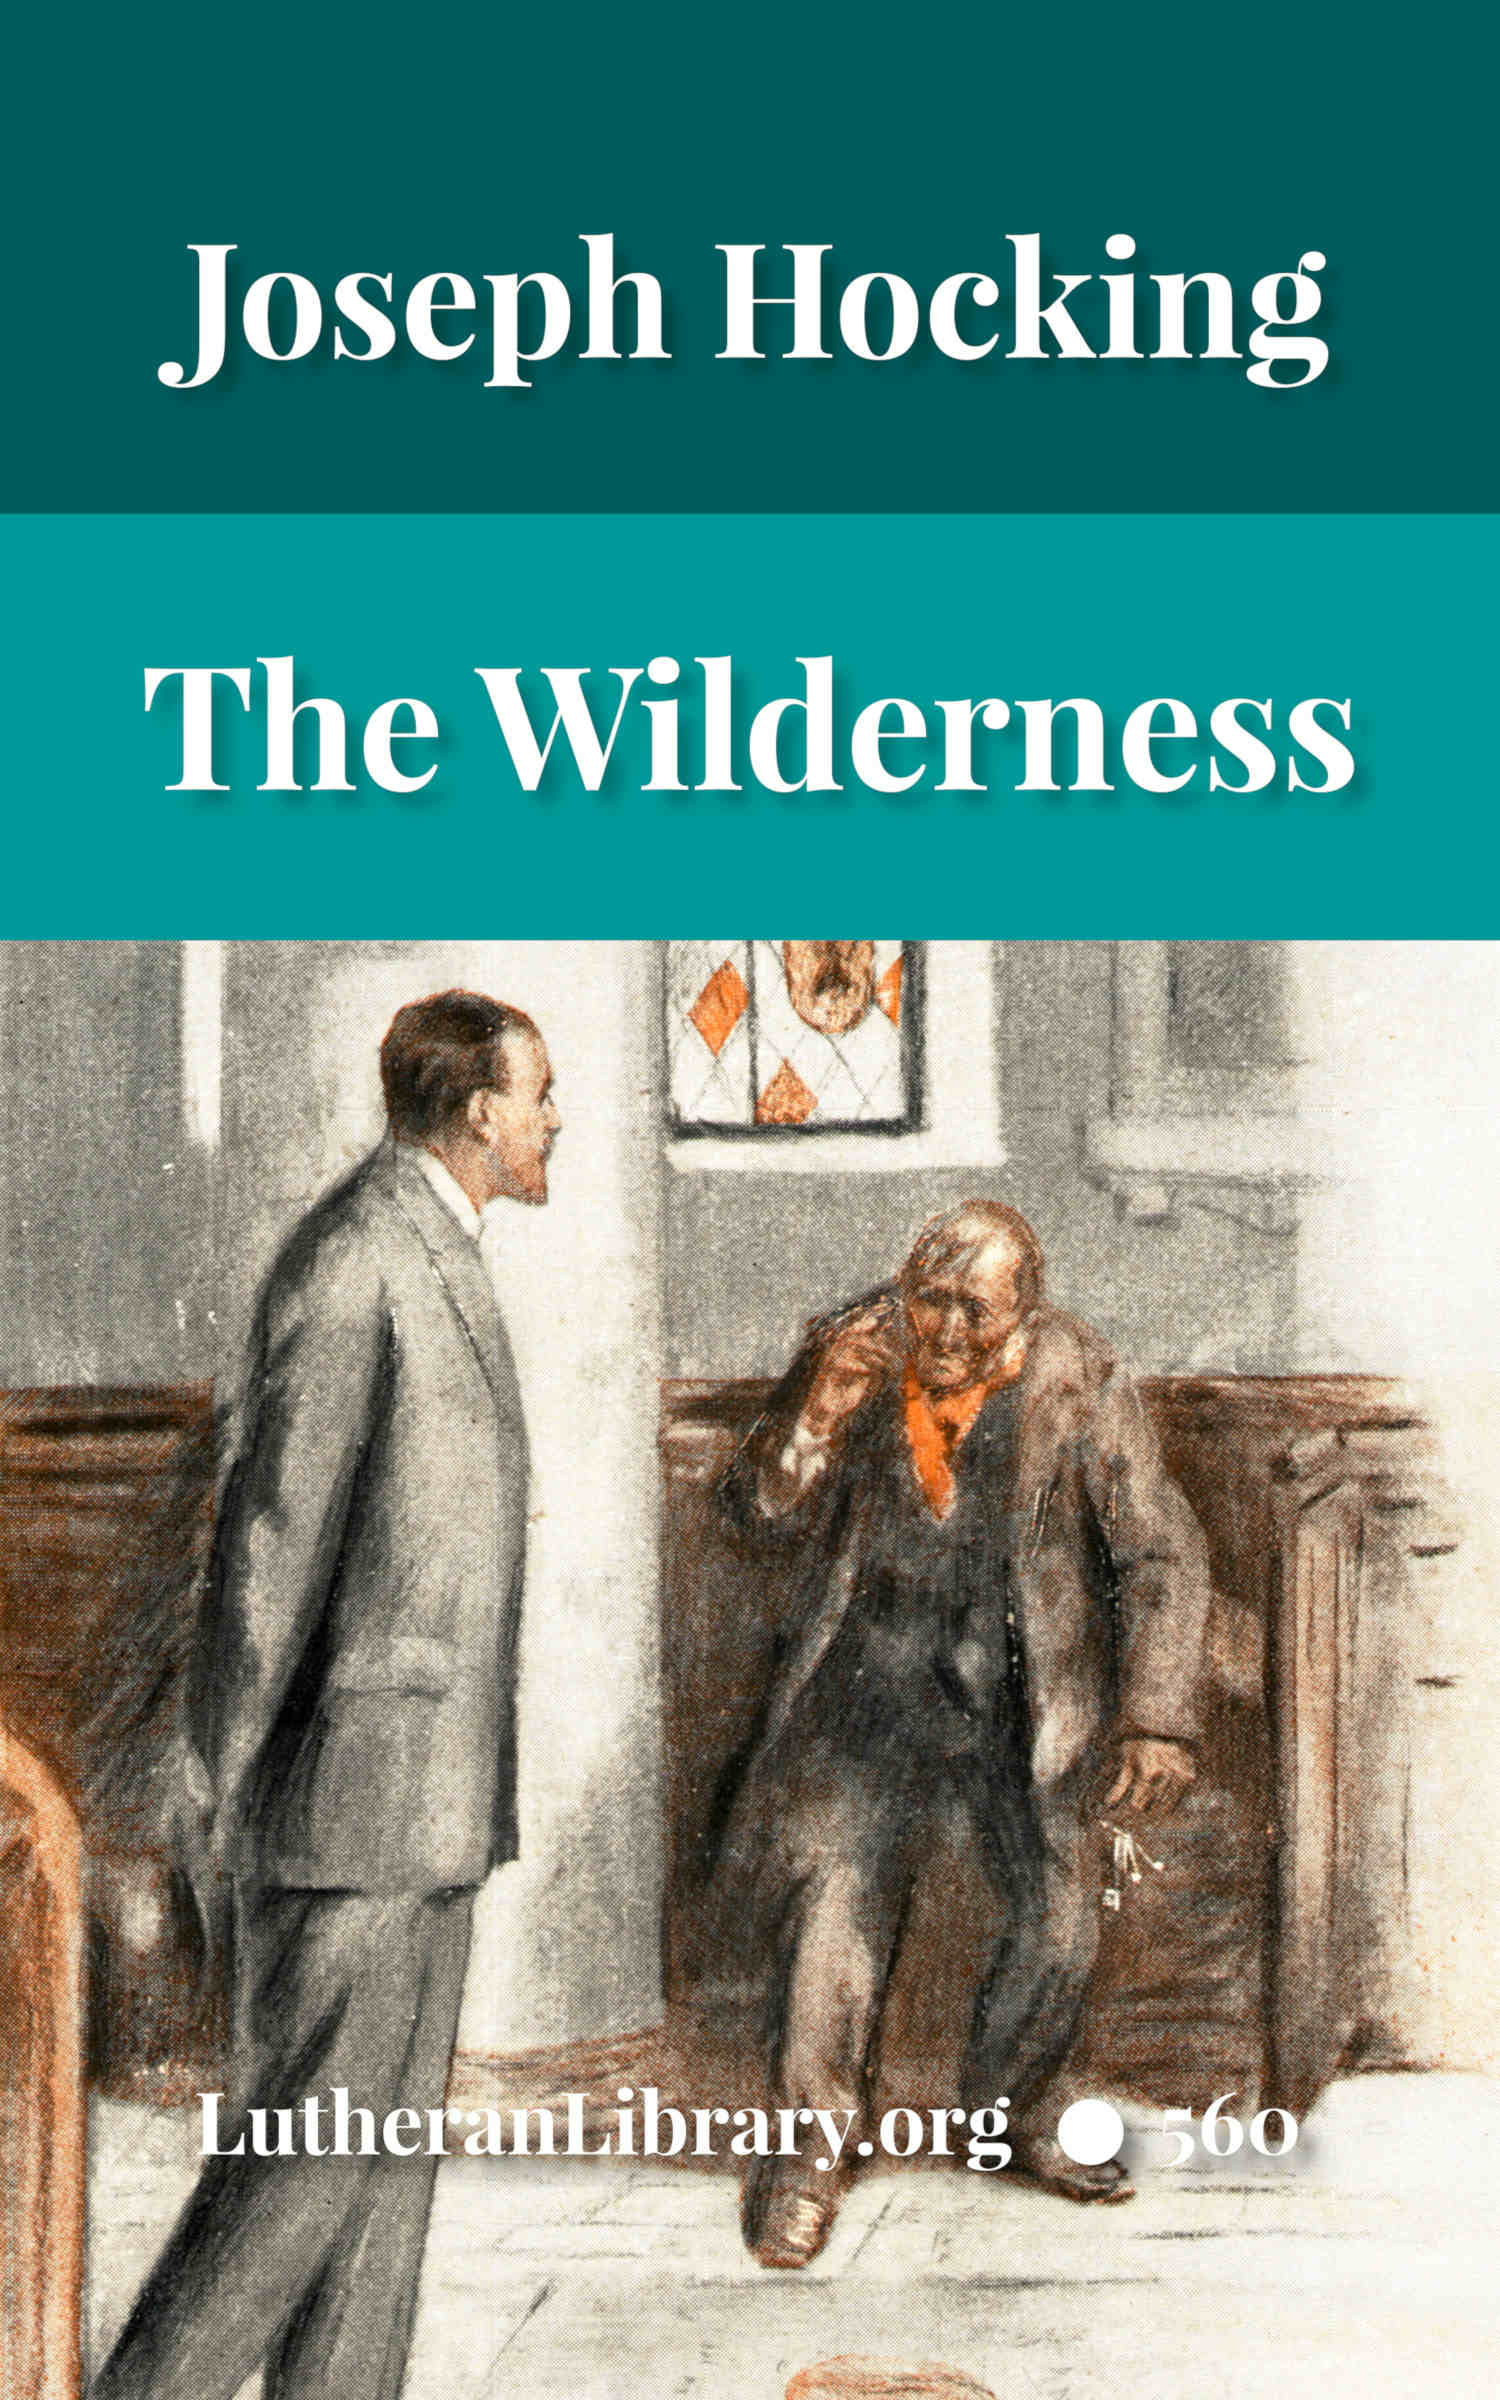 The Wilderness by Joseph Hocking